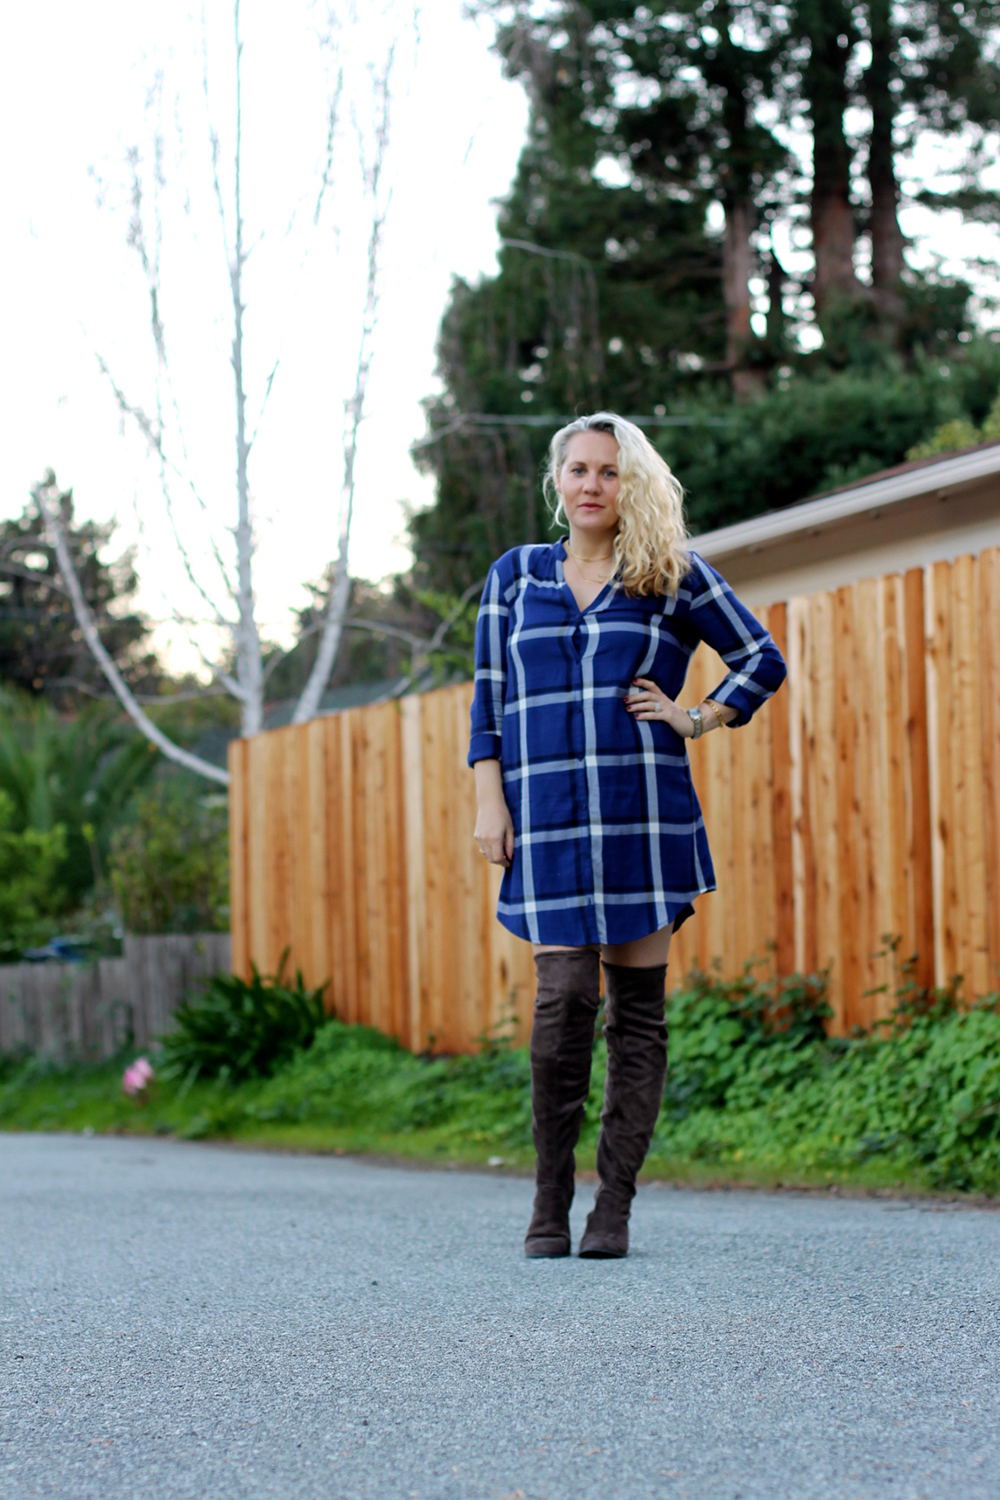 cupcakes-and-cashmere-plaid-shirtdress-outfit-inspiration-fall-fashion-mom-style-have-need-want-4